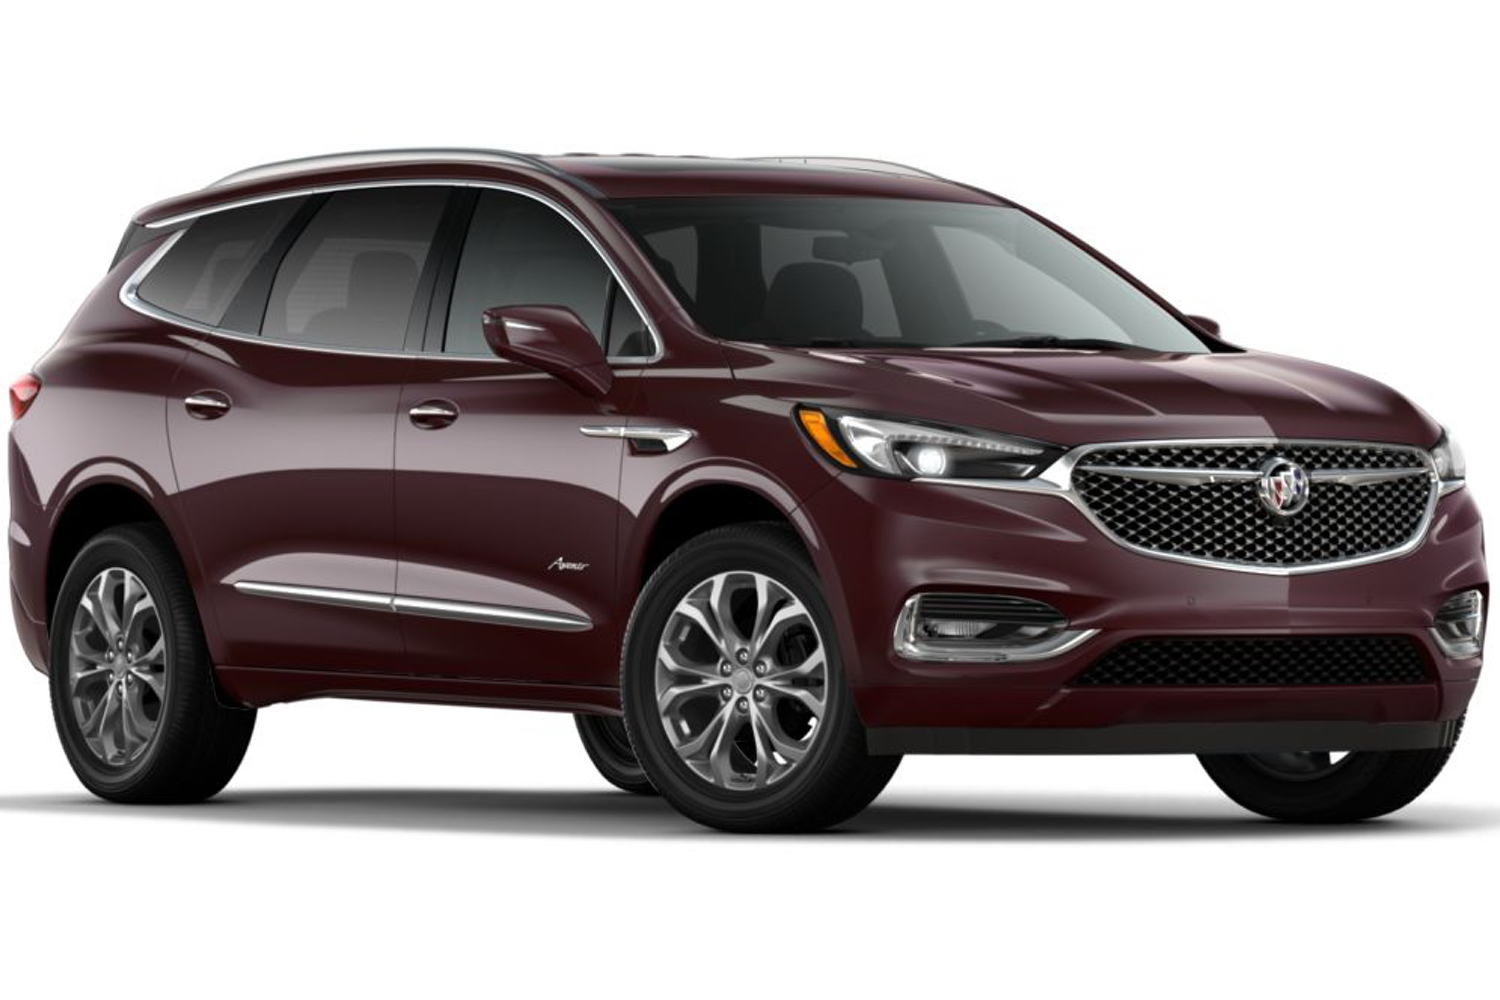 2020 Buick Enclave Gets New Rich Garnet Metallic Color | Gm New 2022 Buick Enclave Avenir Reviews, Cost, Colors